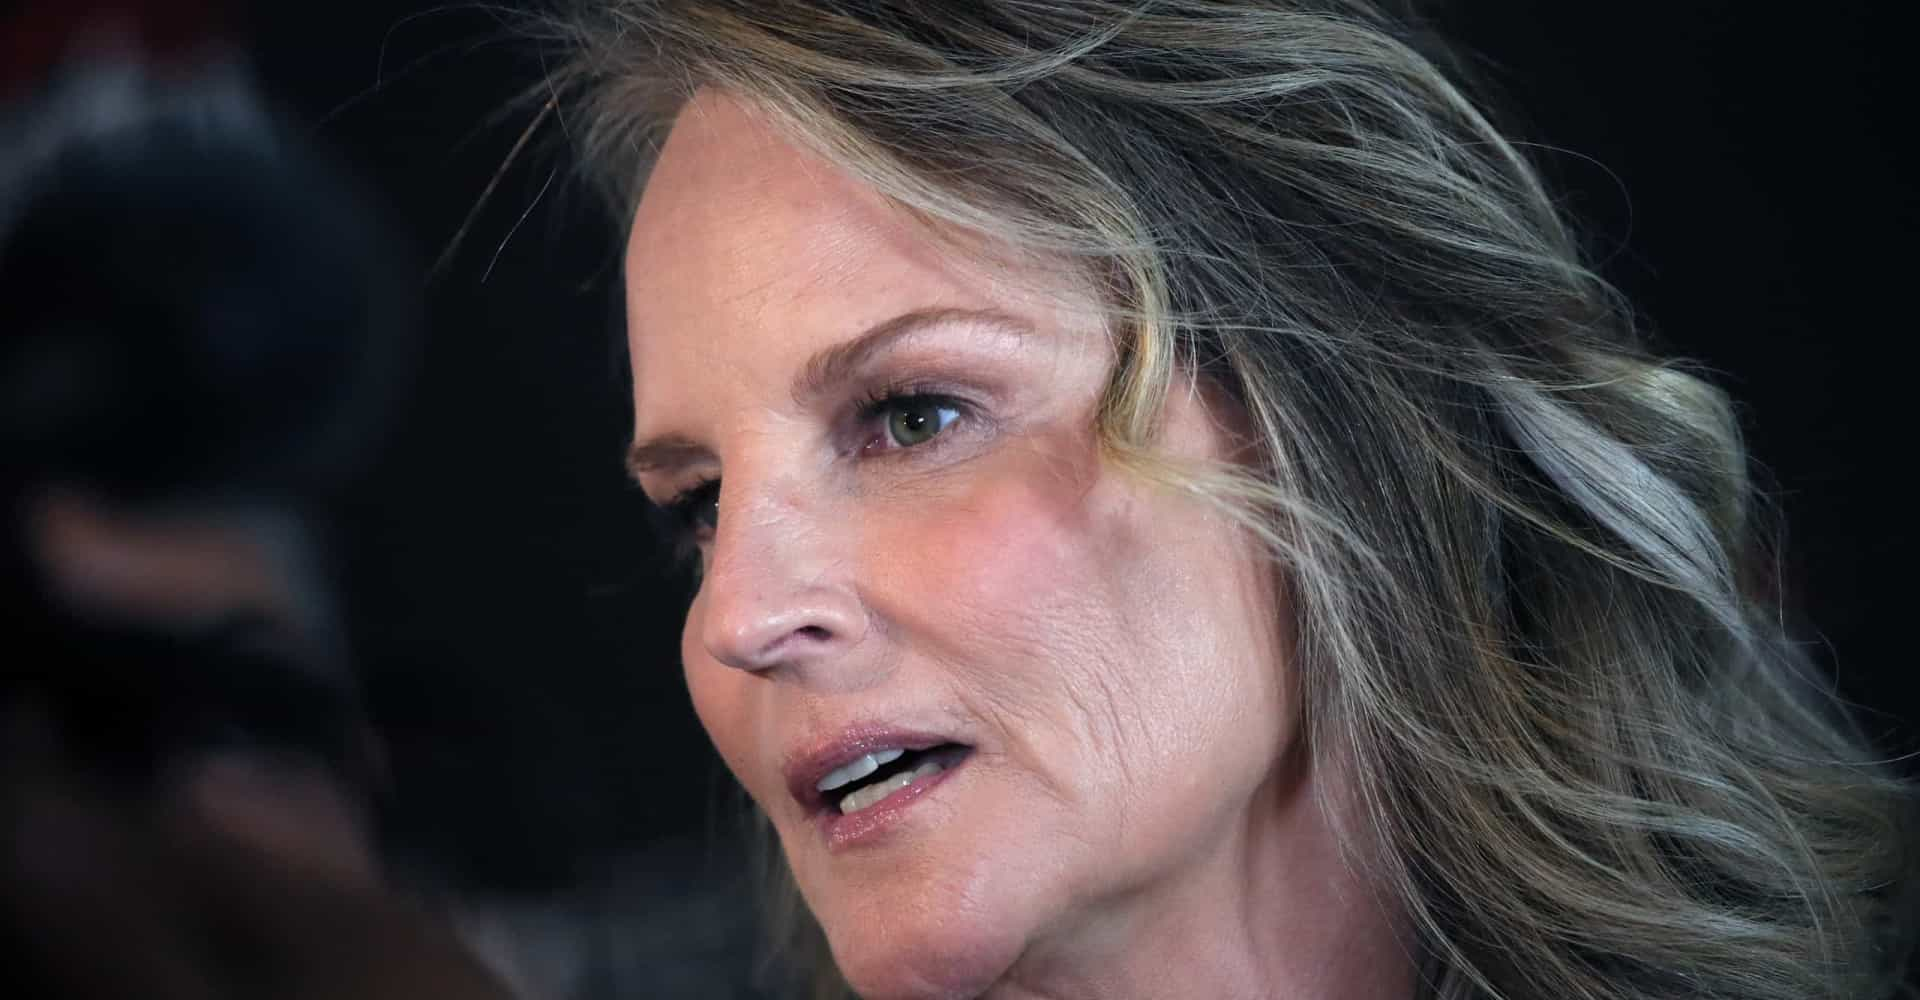 Helen Hunt and other celebs who've been in car accidents